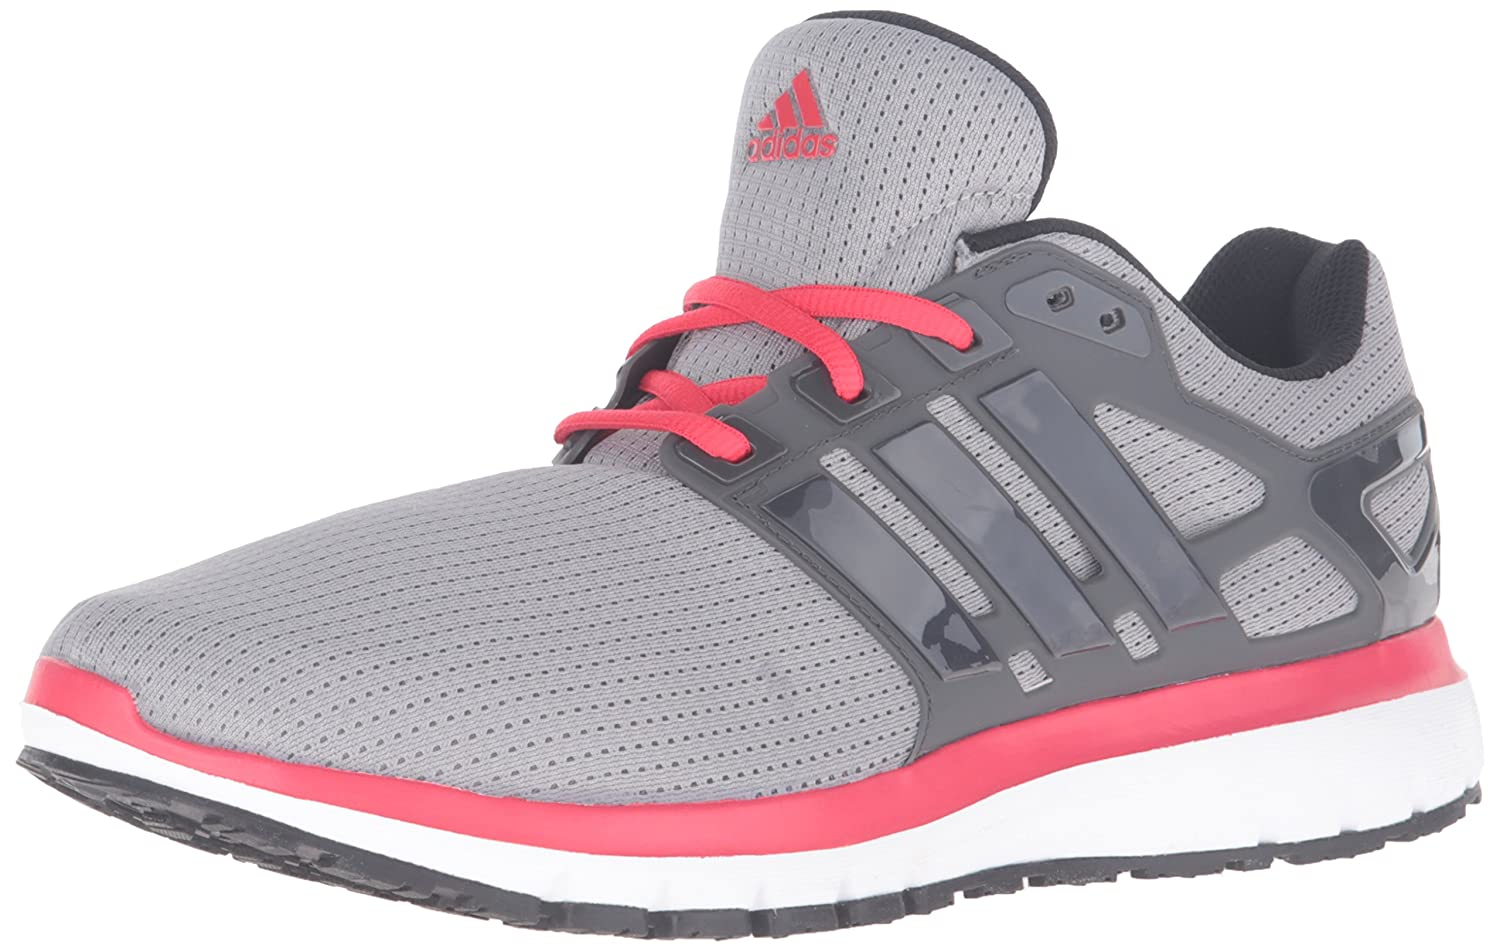 adidas Men's Energy Cloud WTC M Running Shoe B01AMXWJS0 8.5 D(M) US|Mgh Solid Grey/Dark Shale/Ray Red Fabric